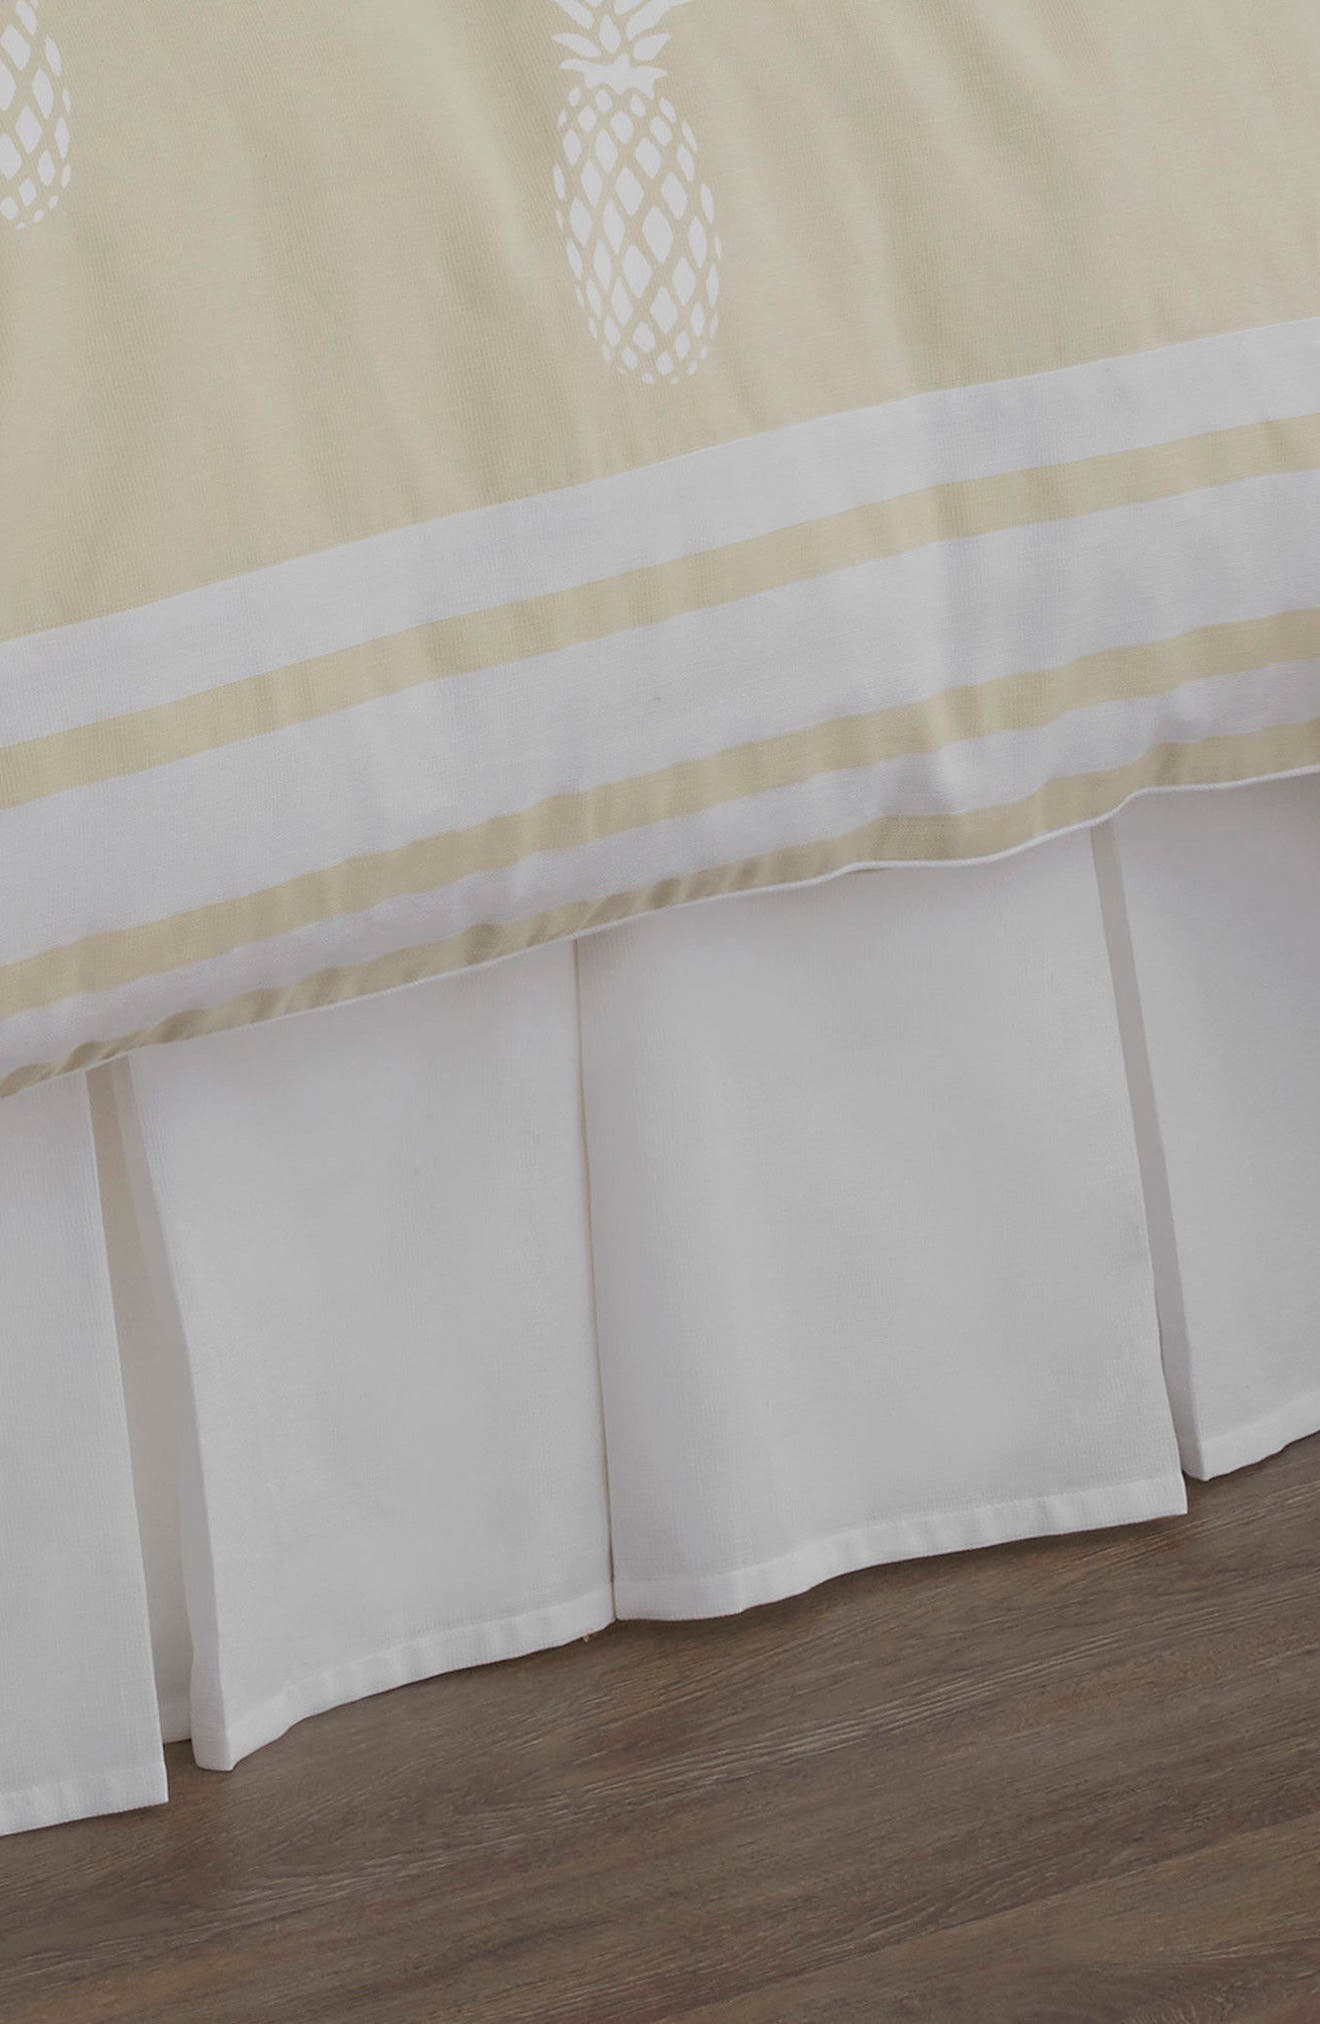 Main Image - Southern Tide Southern Hospitality Bed Skirt